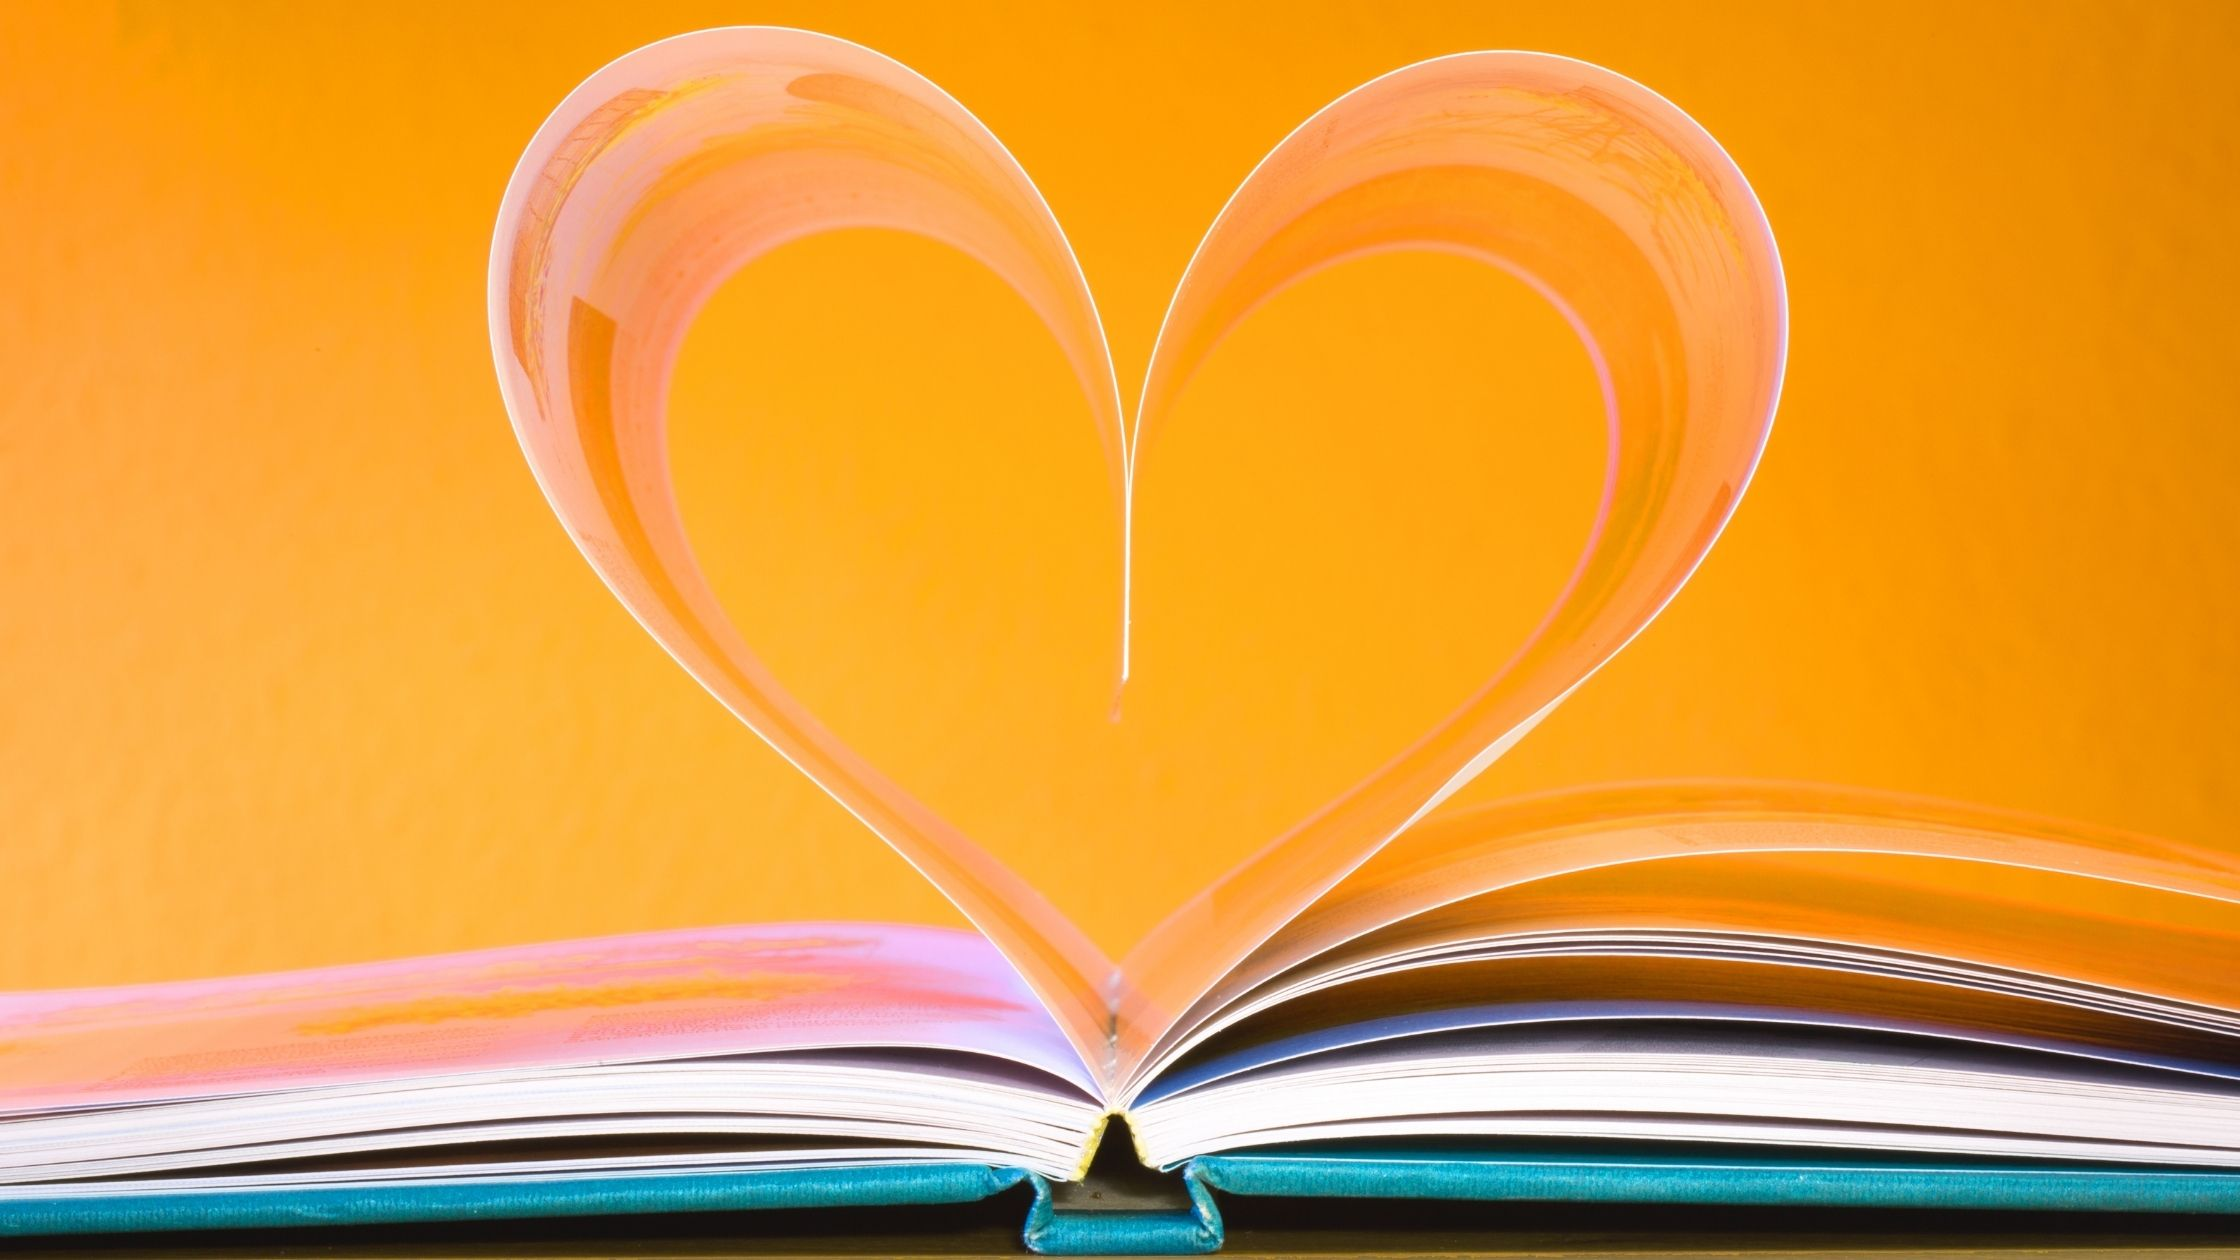 Book laid out with two pages curled to form a heart shape